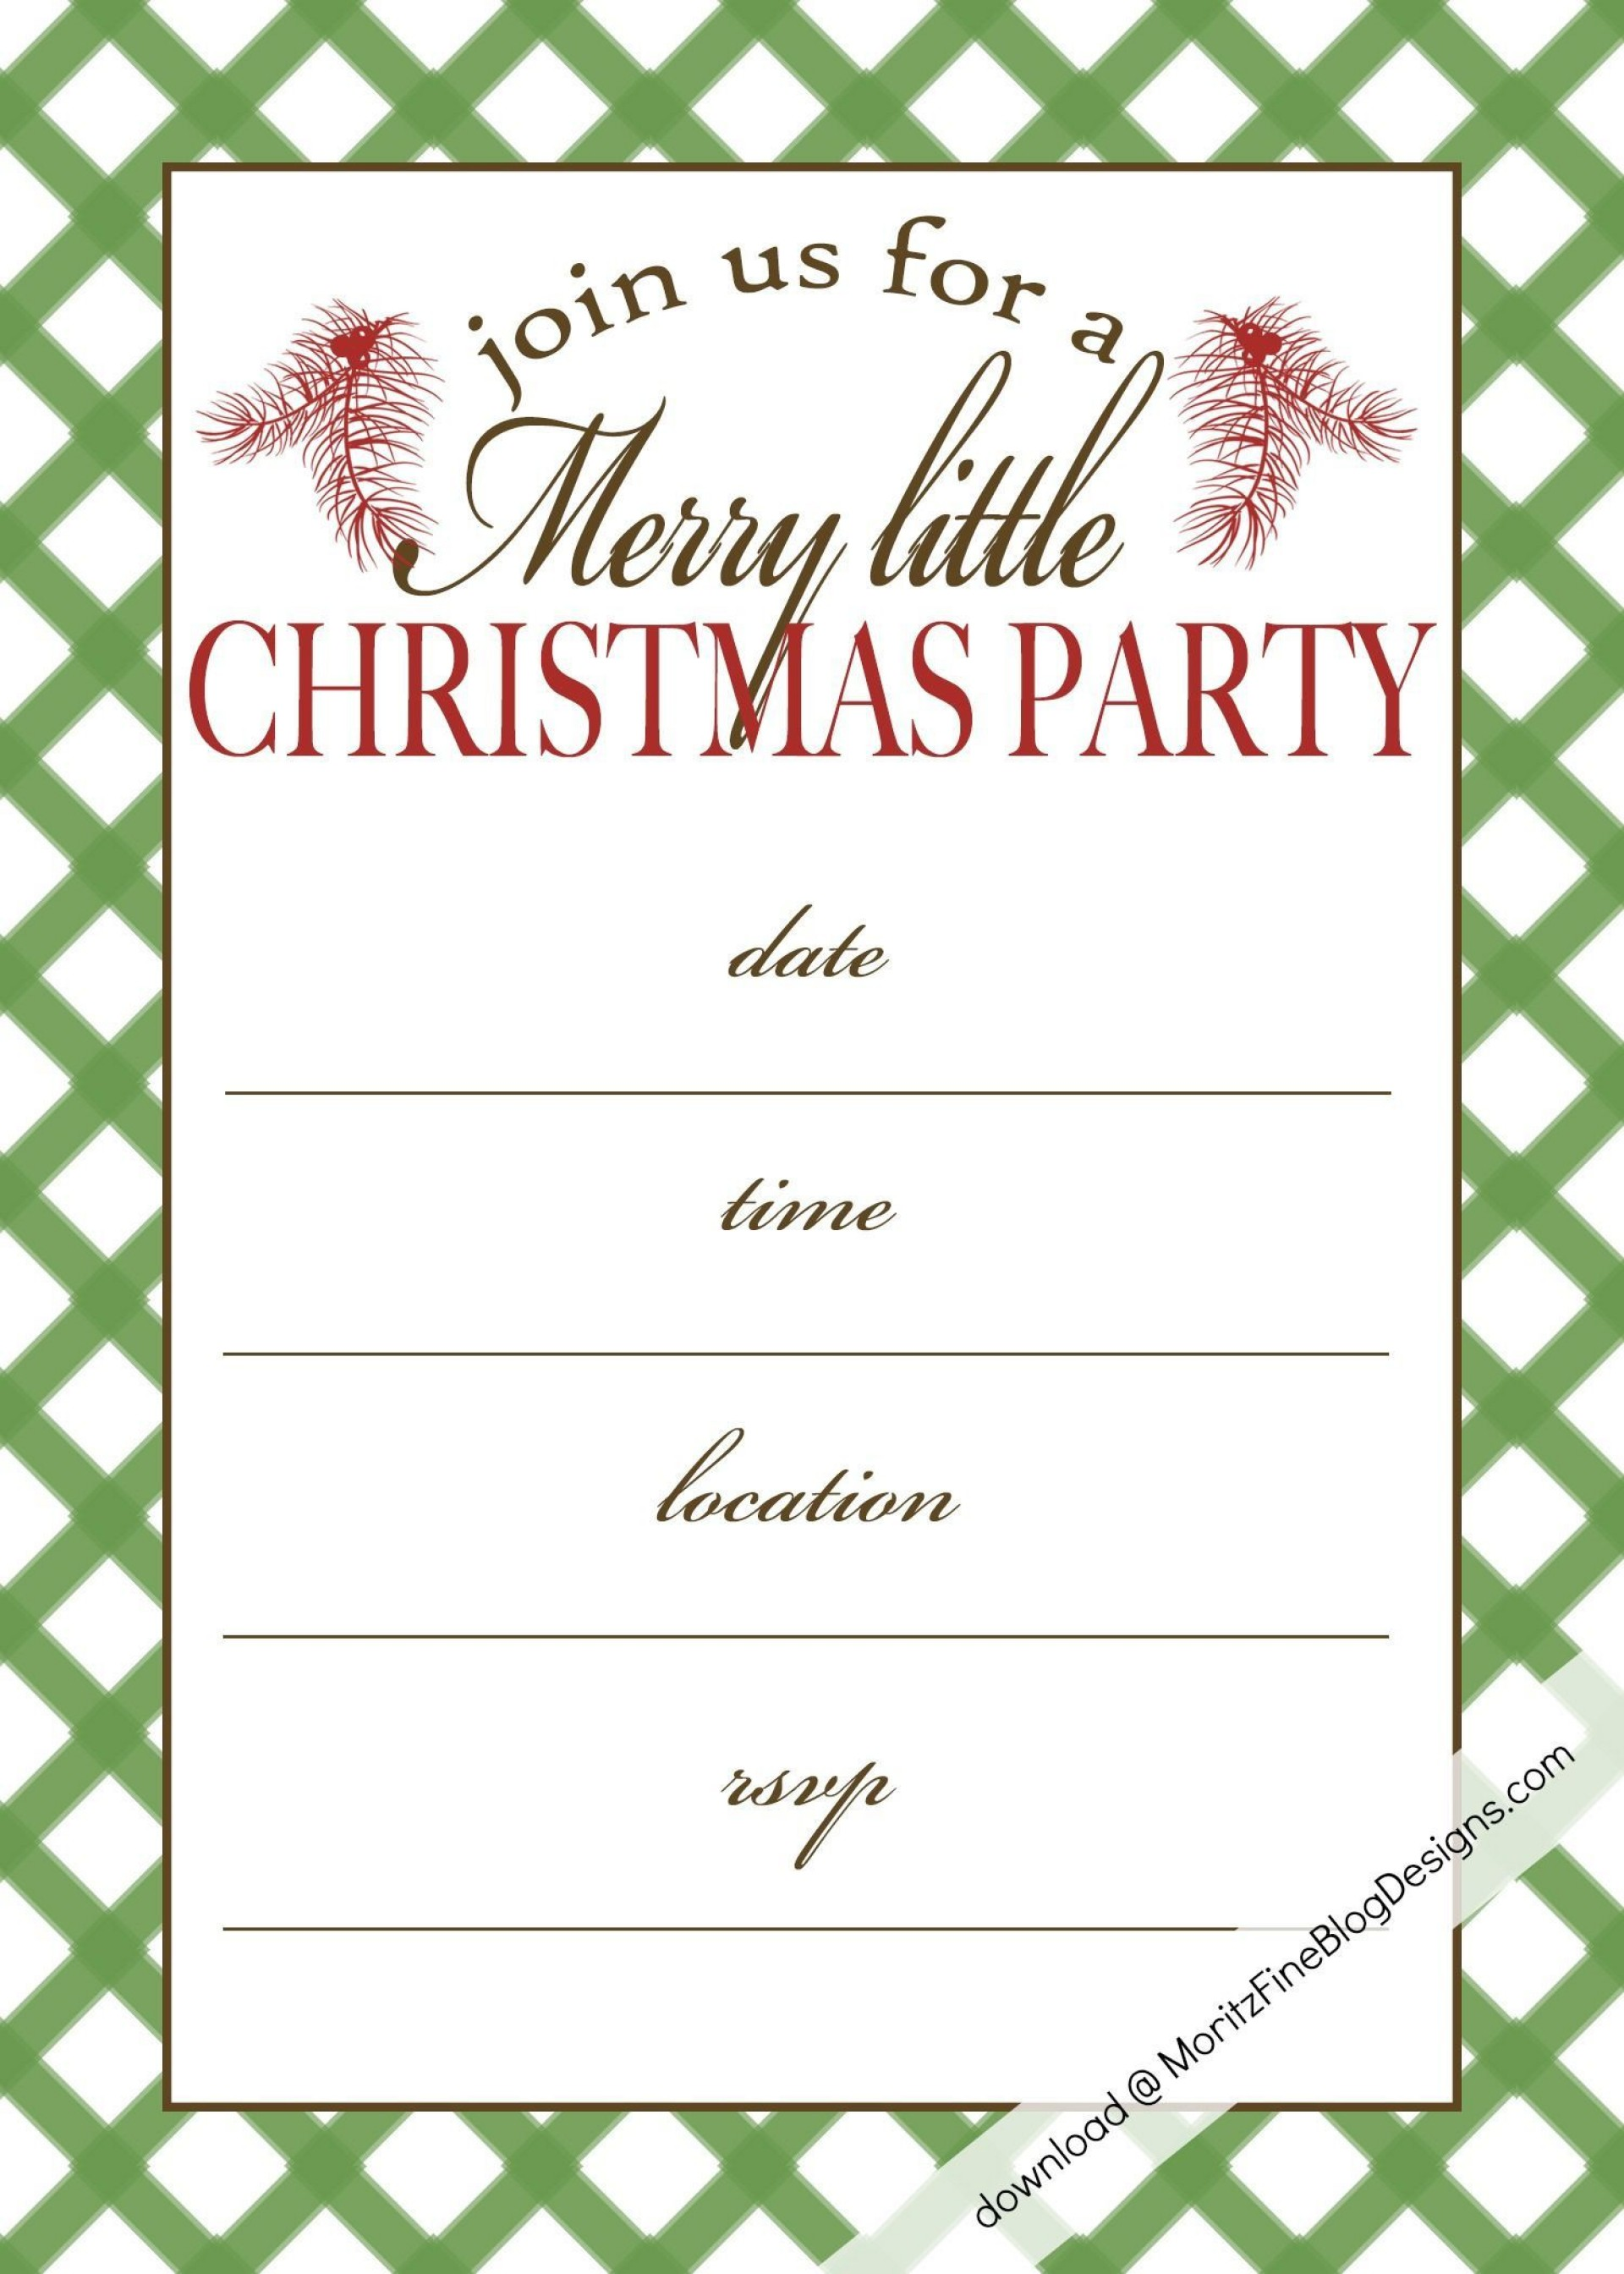 002 Awesome Xma Party Invite Template Free Photo  Holiday Invitation Word Printable Office Christma Download1920